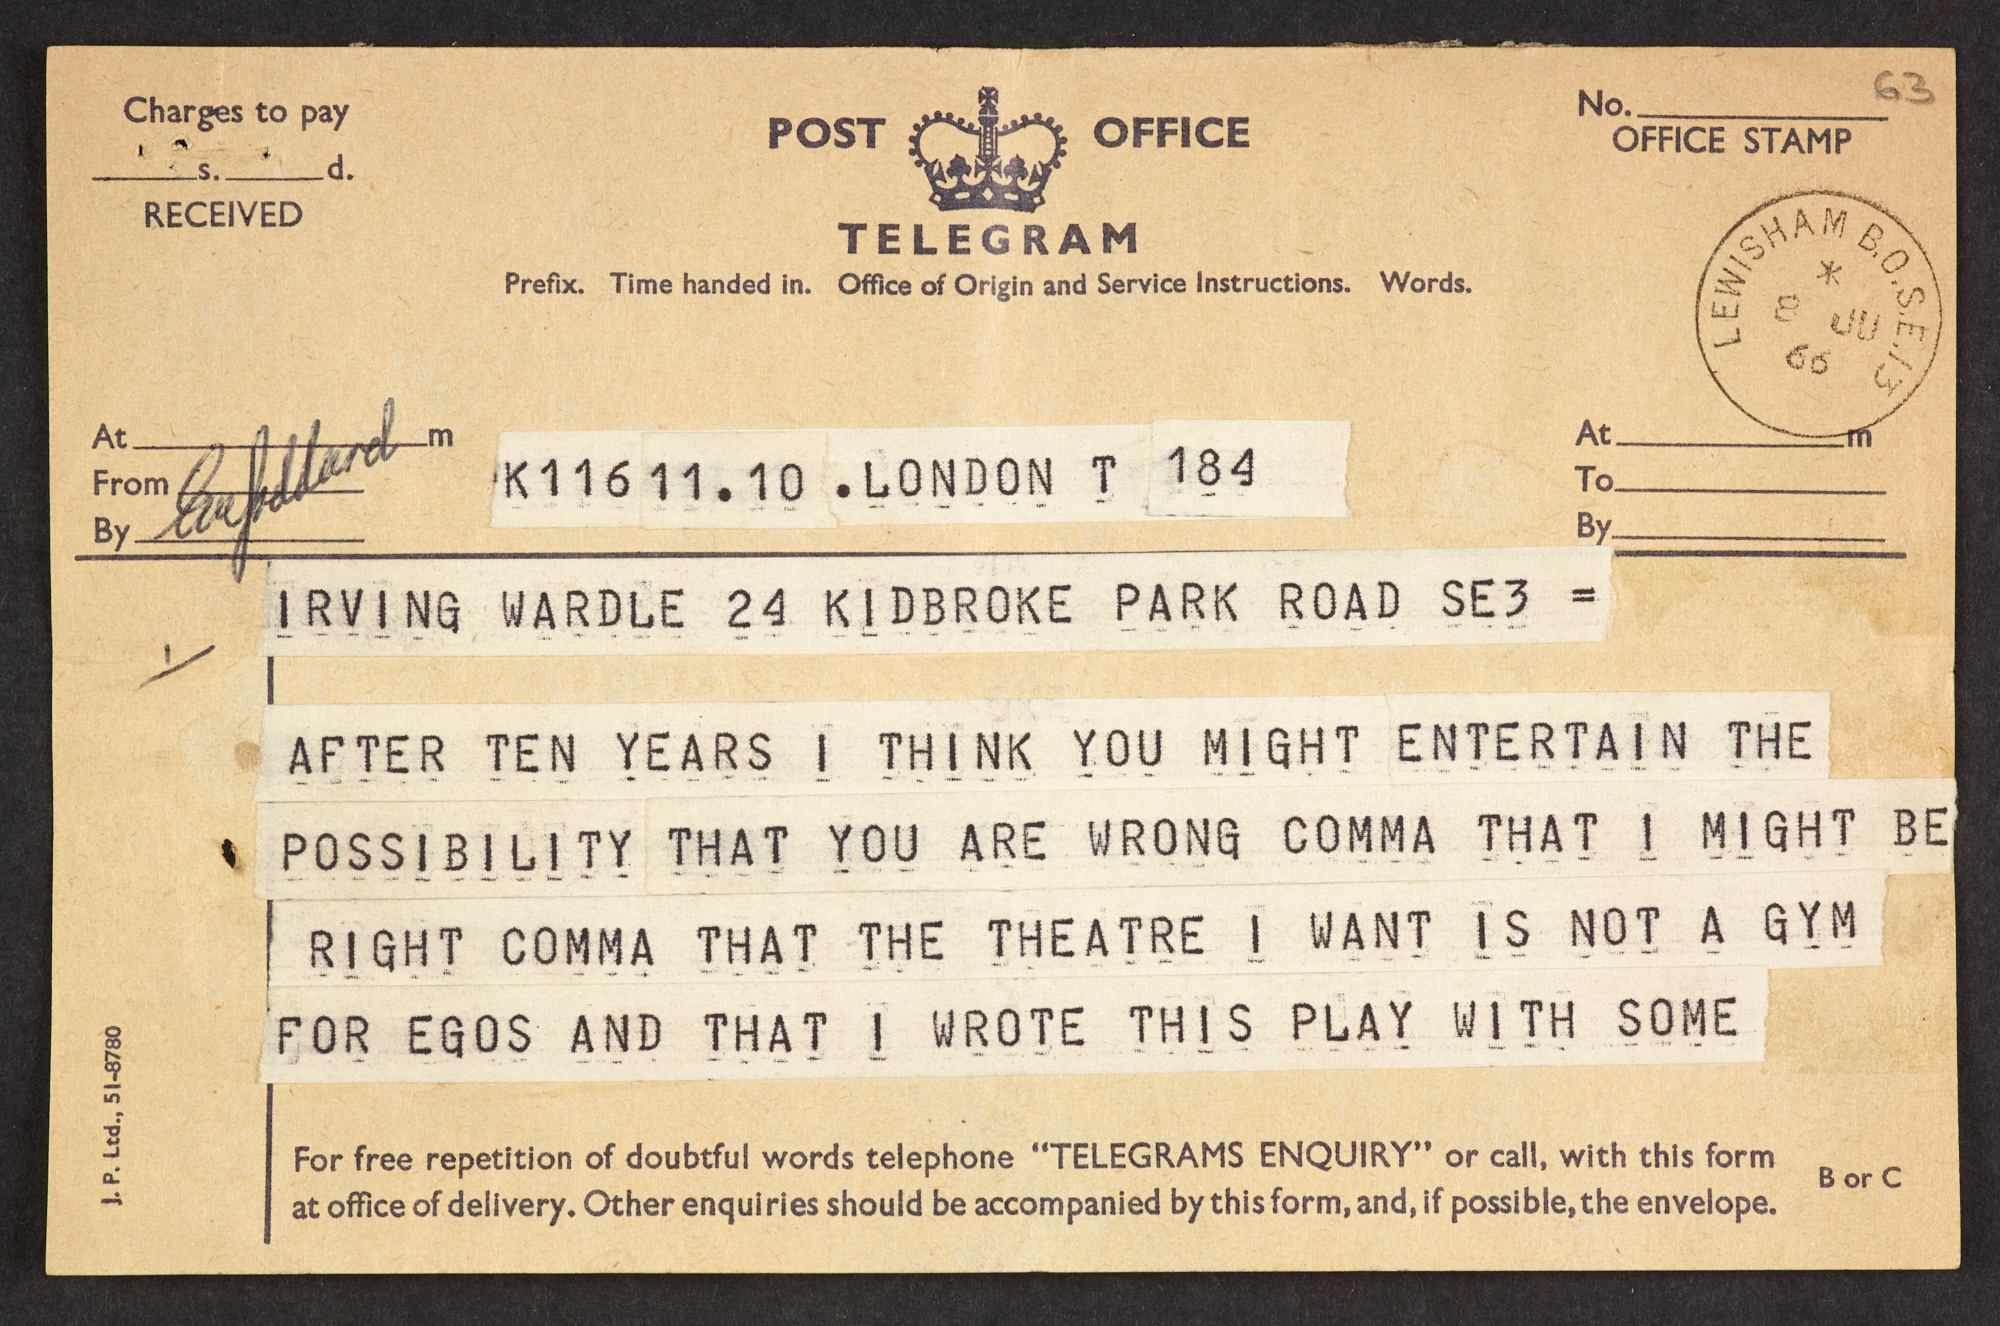 Telegram of complaint from John Osborne to Irving Wardle